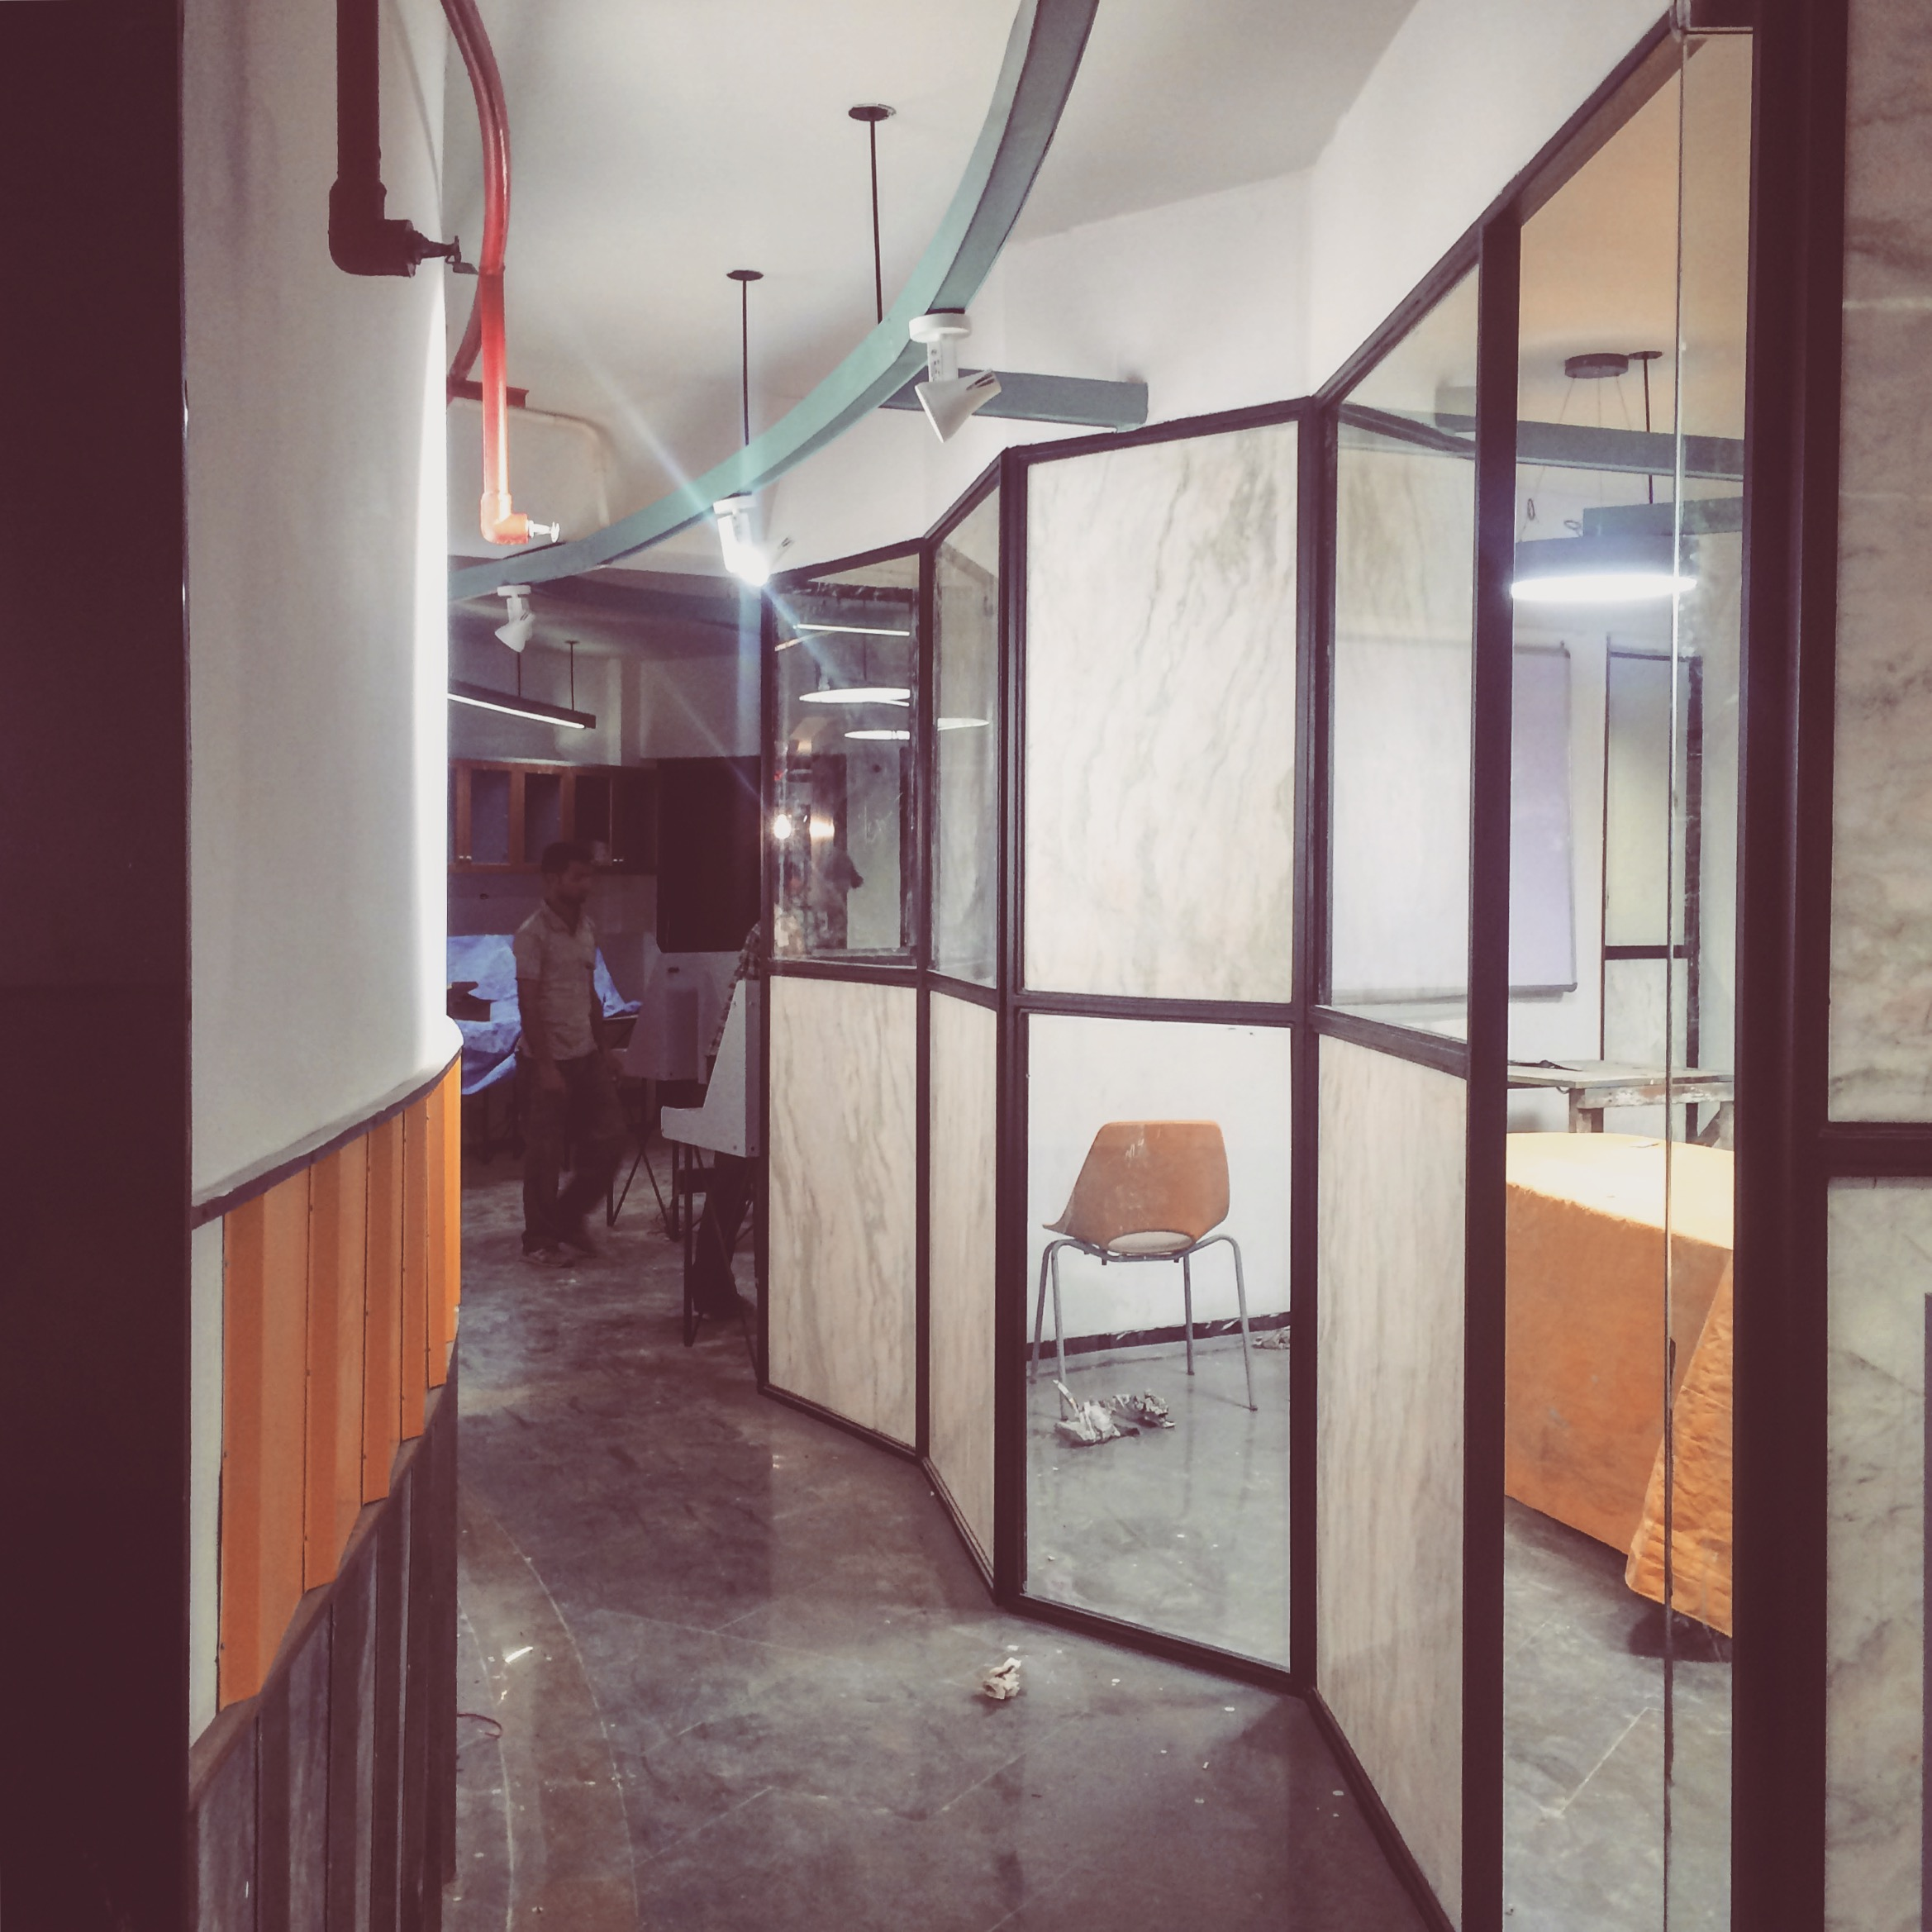 During construction–office in Hauz Khas by Harsh Vardhan Jain Architects and Co.Lab Design, Photography by Harsh Vardhan Jain